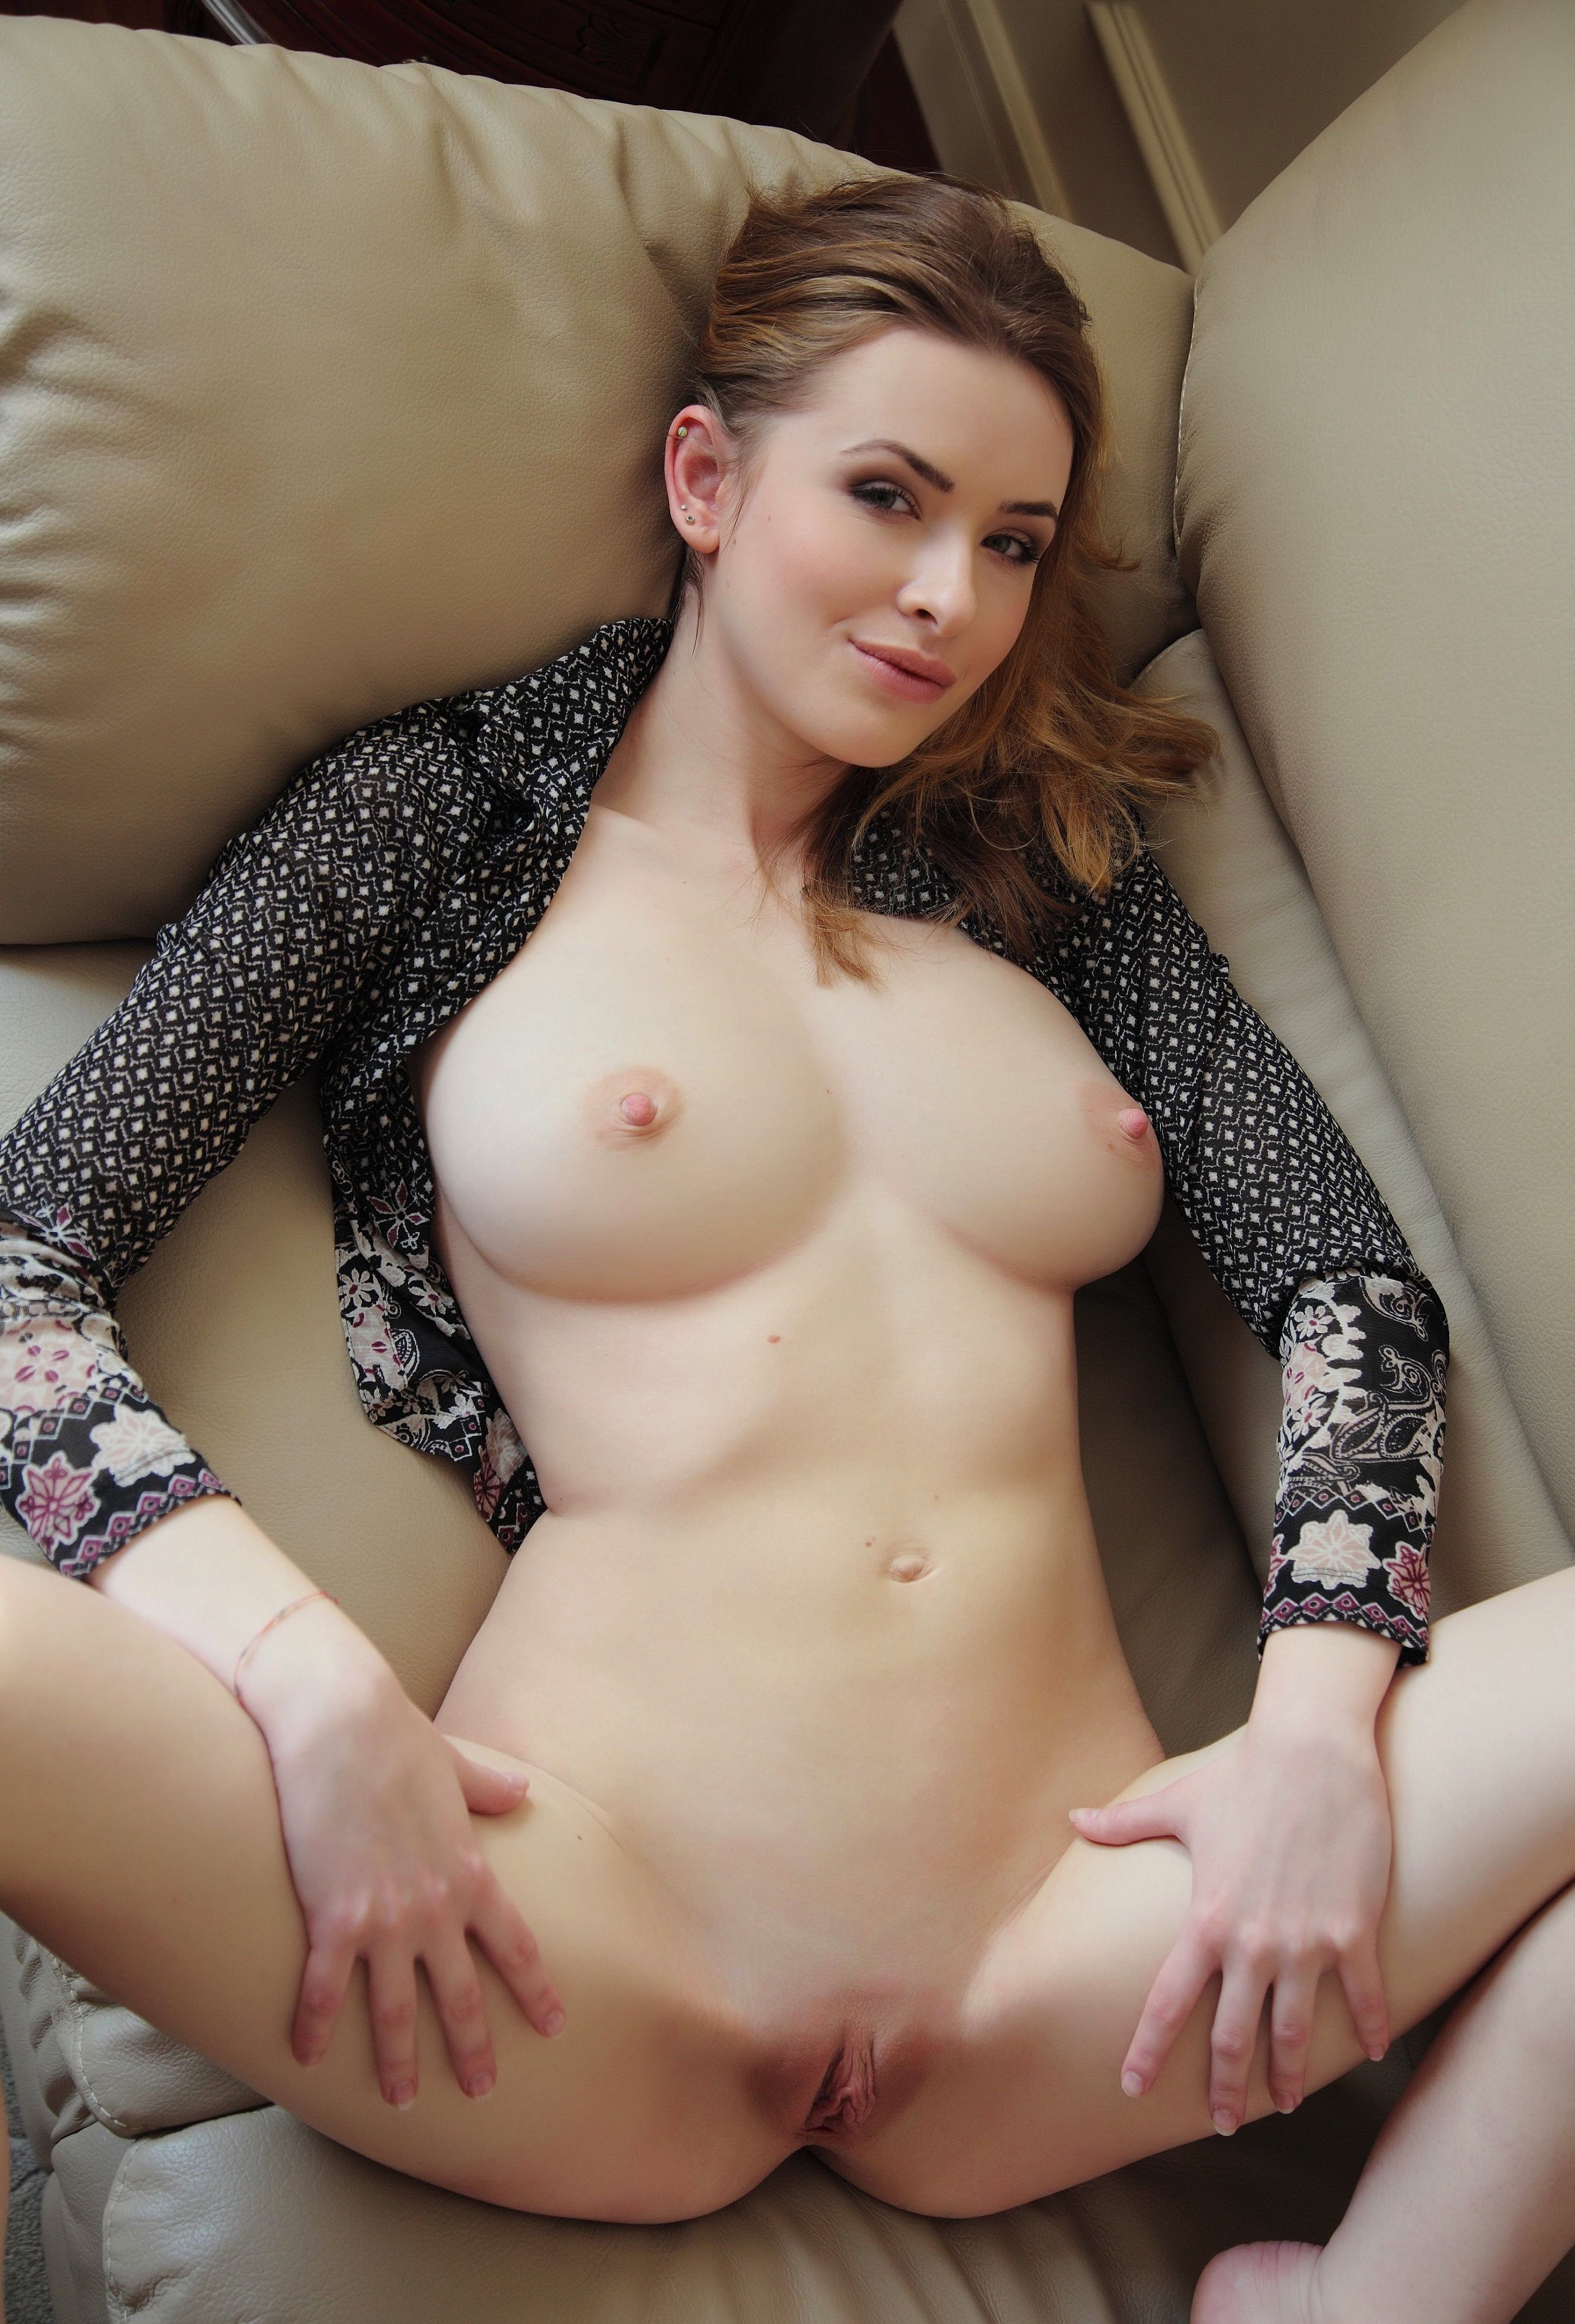 Russia  nudist pussy Attention explicit porn Open pussy (180 Russian amateur nude porn pictures  - more hot nude pictures at GirlfriendVids